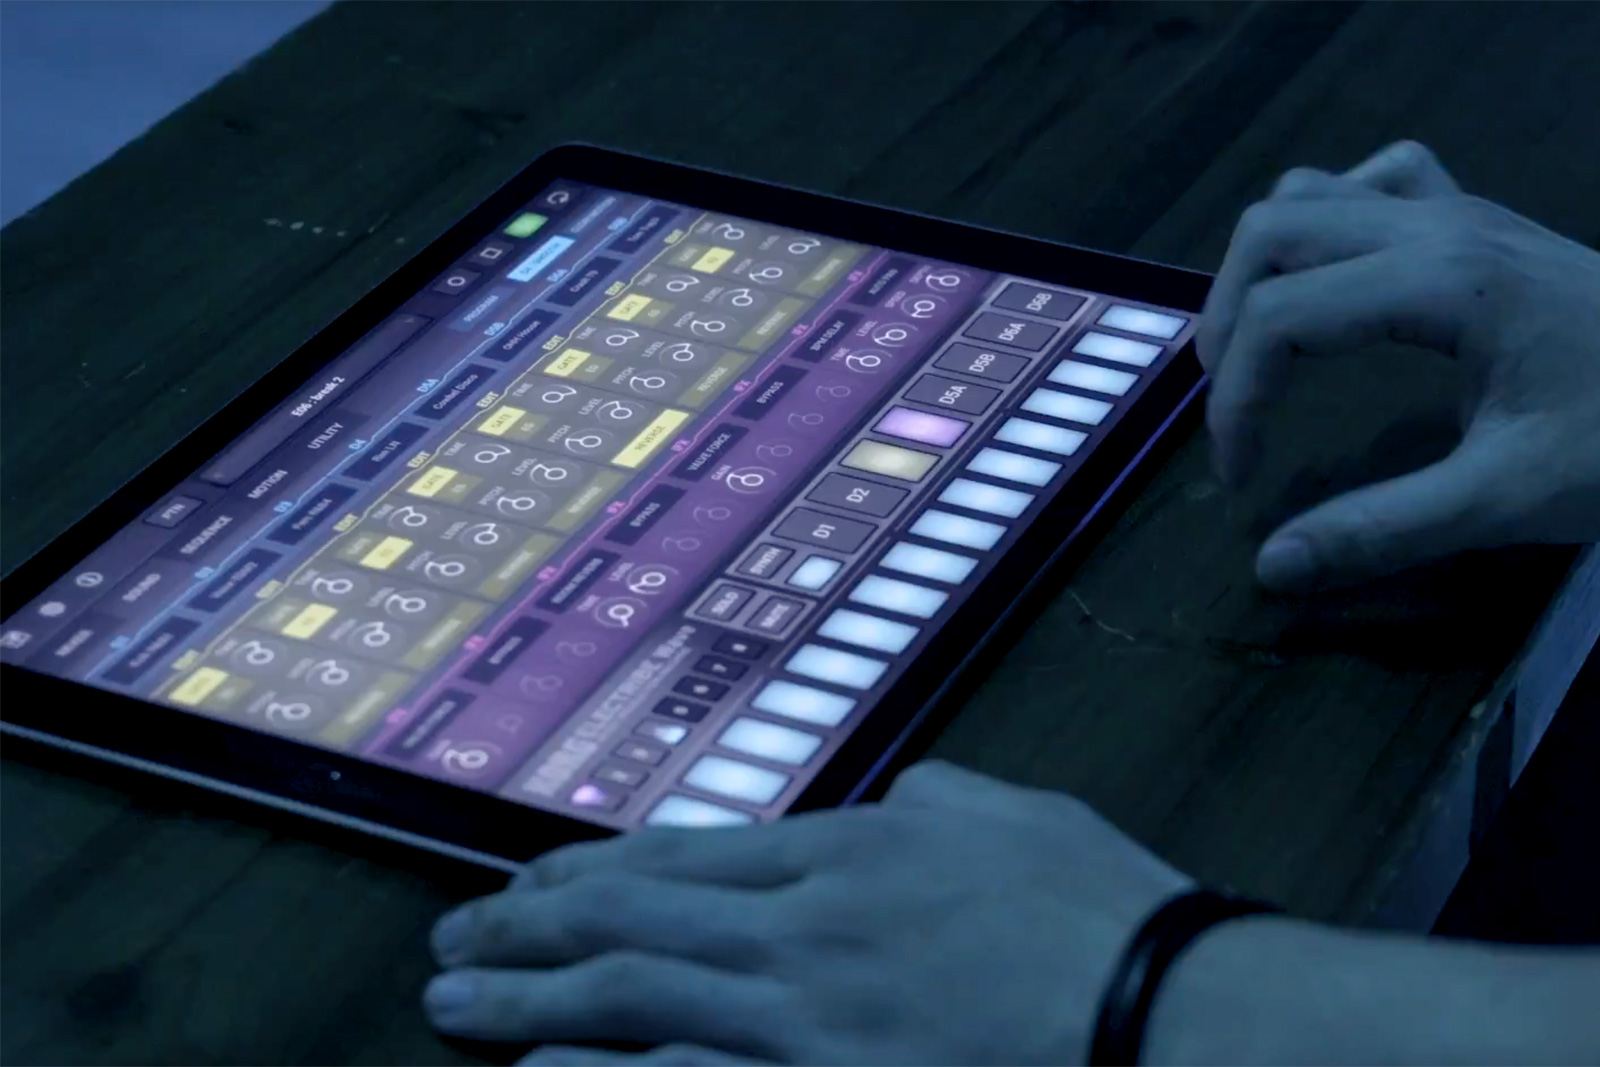 Korg's Electribe Wave app turns an iPad into an EDM beat machine – Cool stuff you want